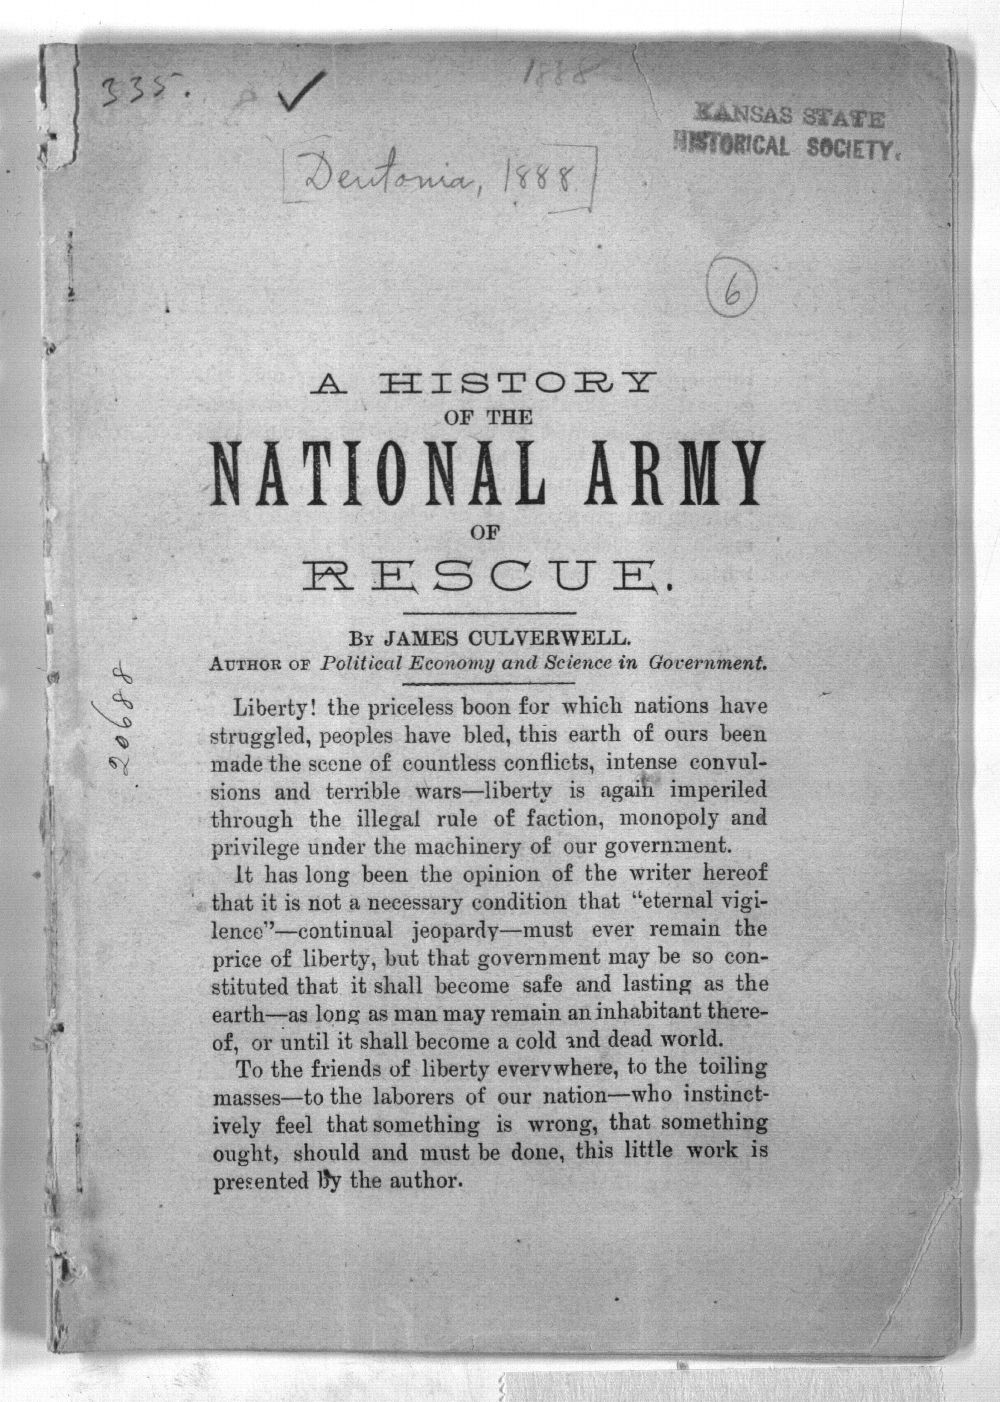 A history of the National Army of Rescue - 1